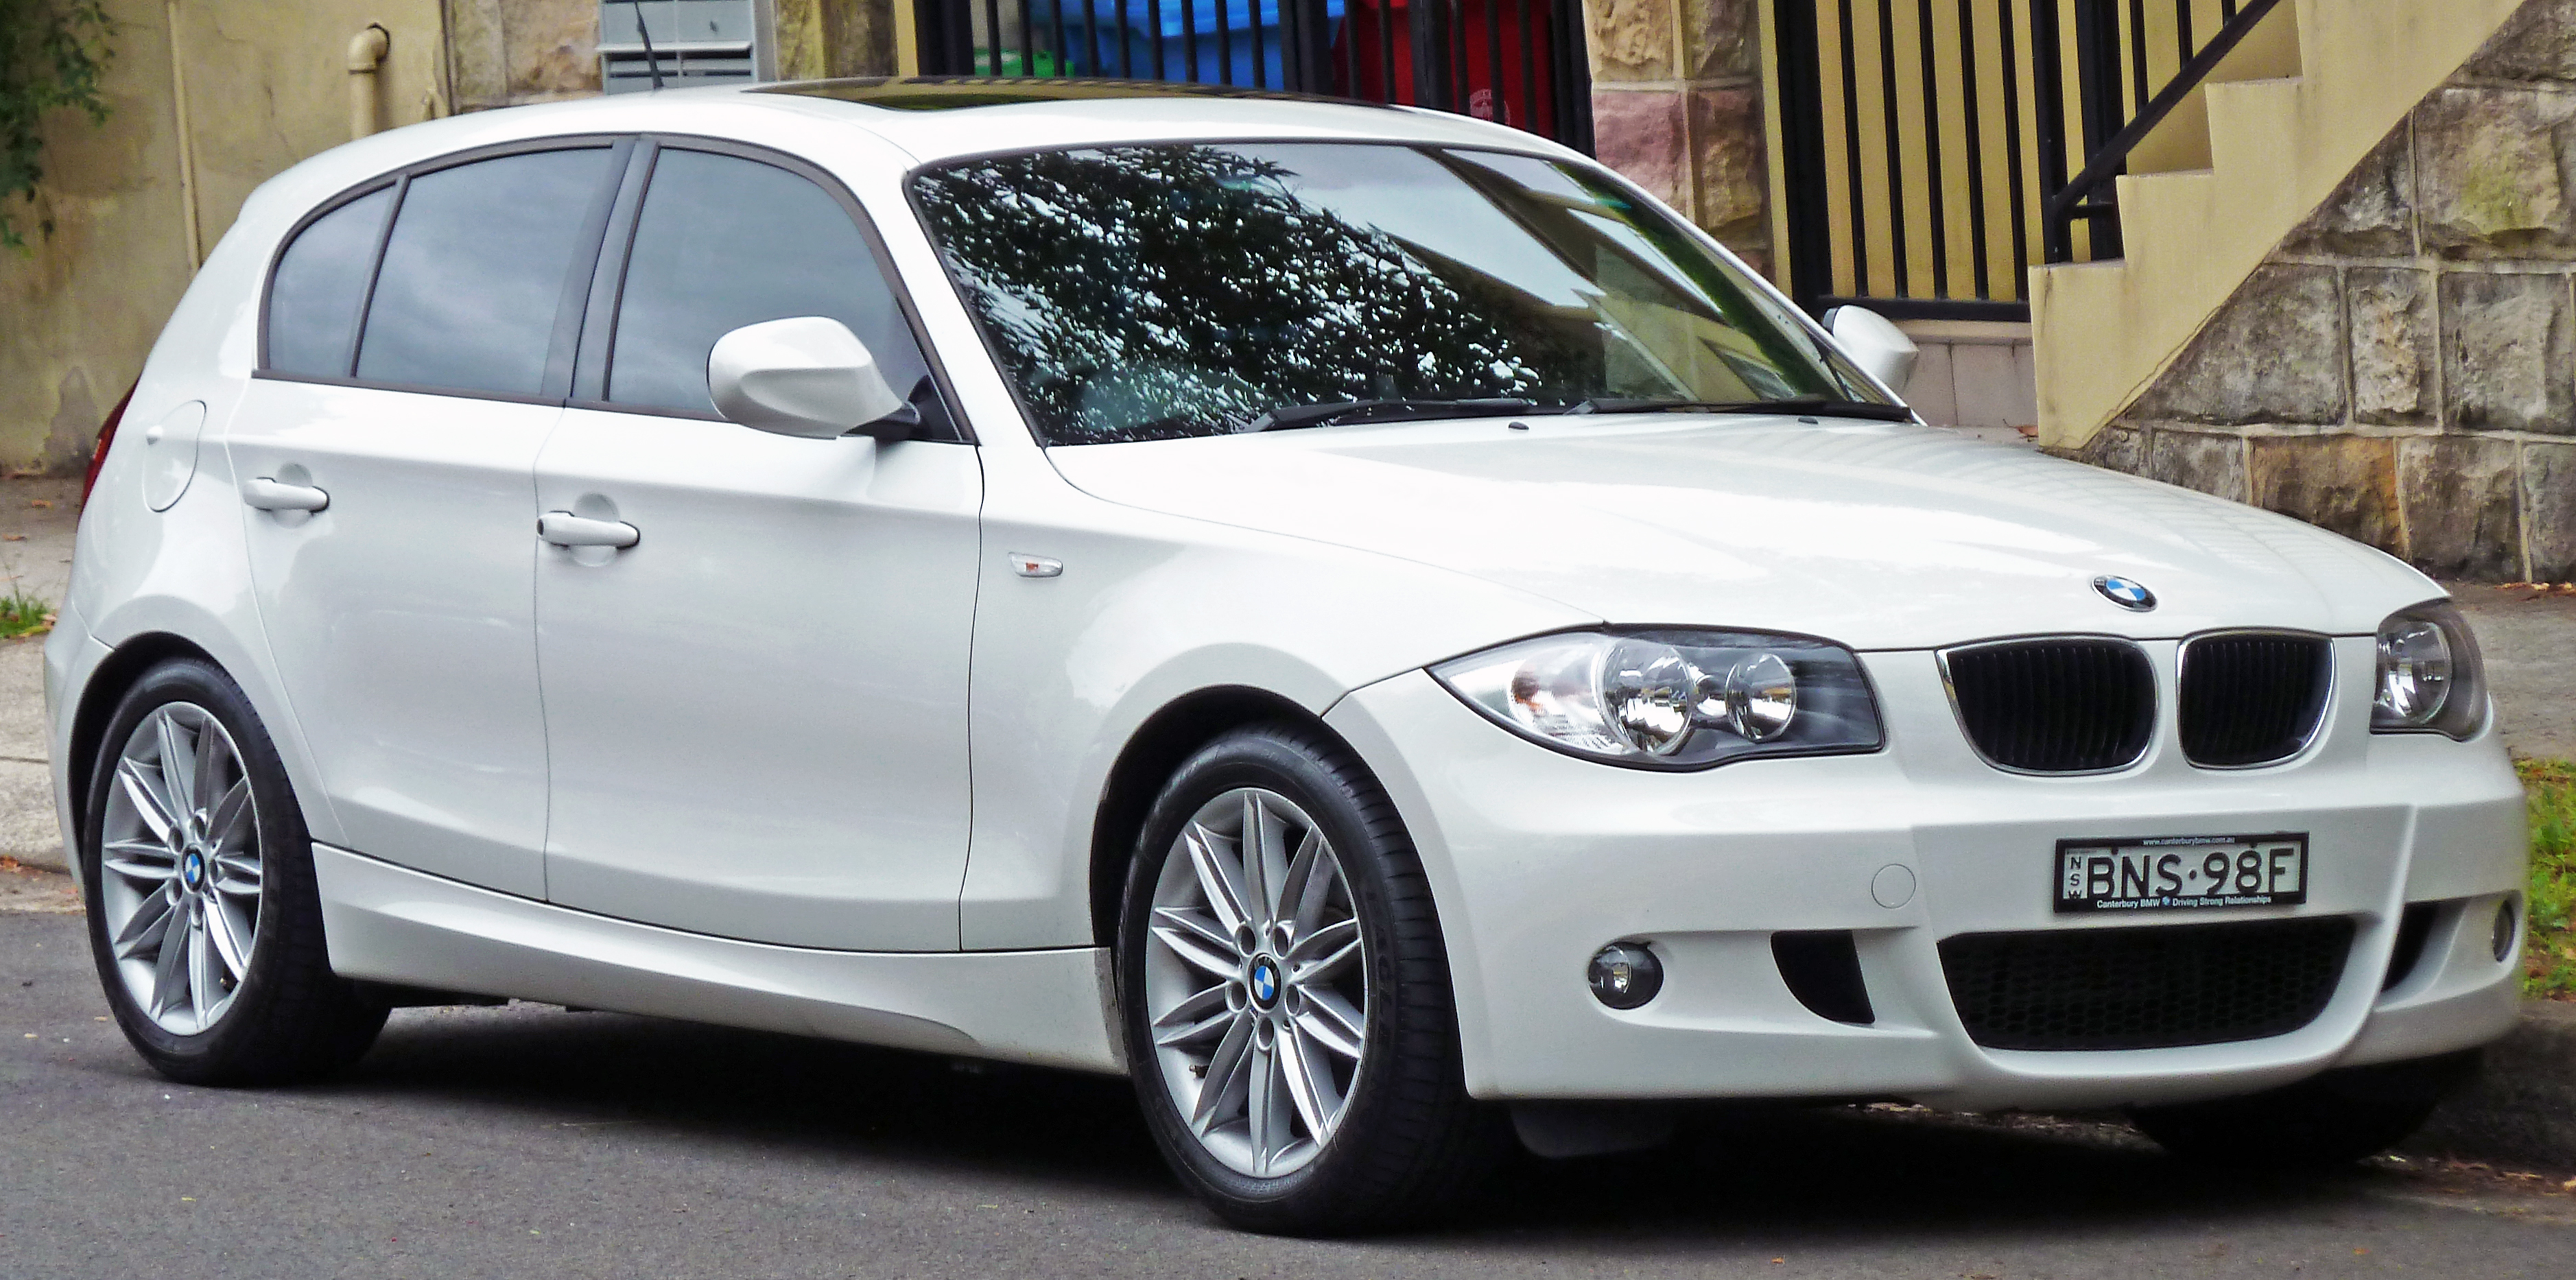 file 2010 bmw 118d e87 my10 5 door hatchback 2011 01 13 wikimedia commons. Black Bedroom Furniture Sets. Home Design Ideas